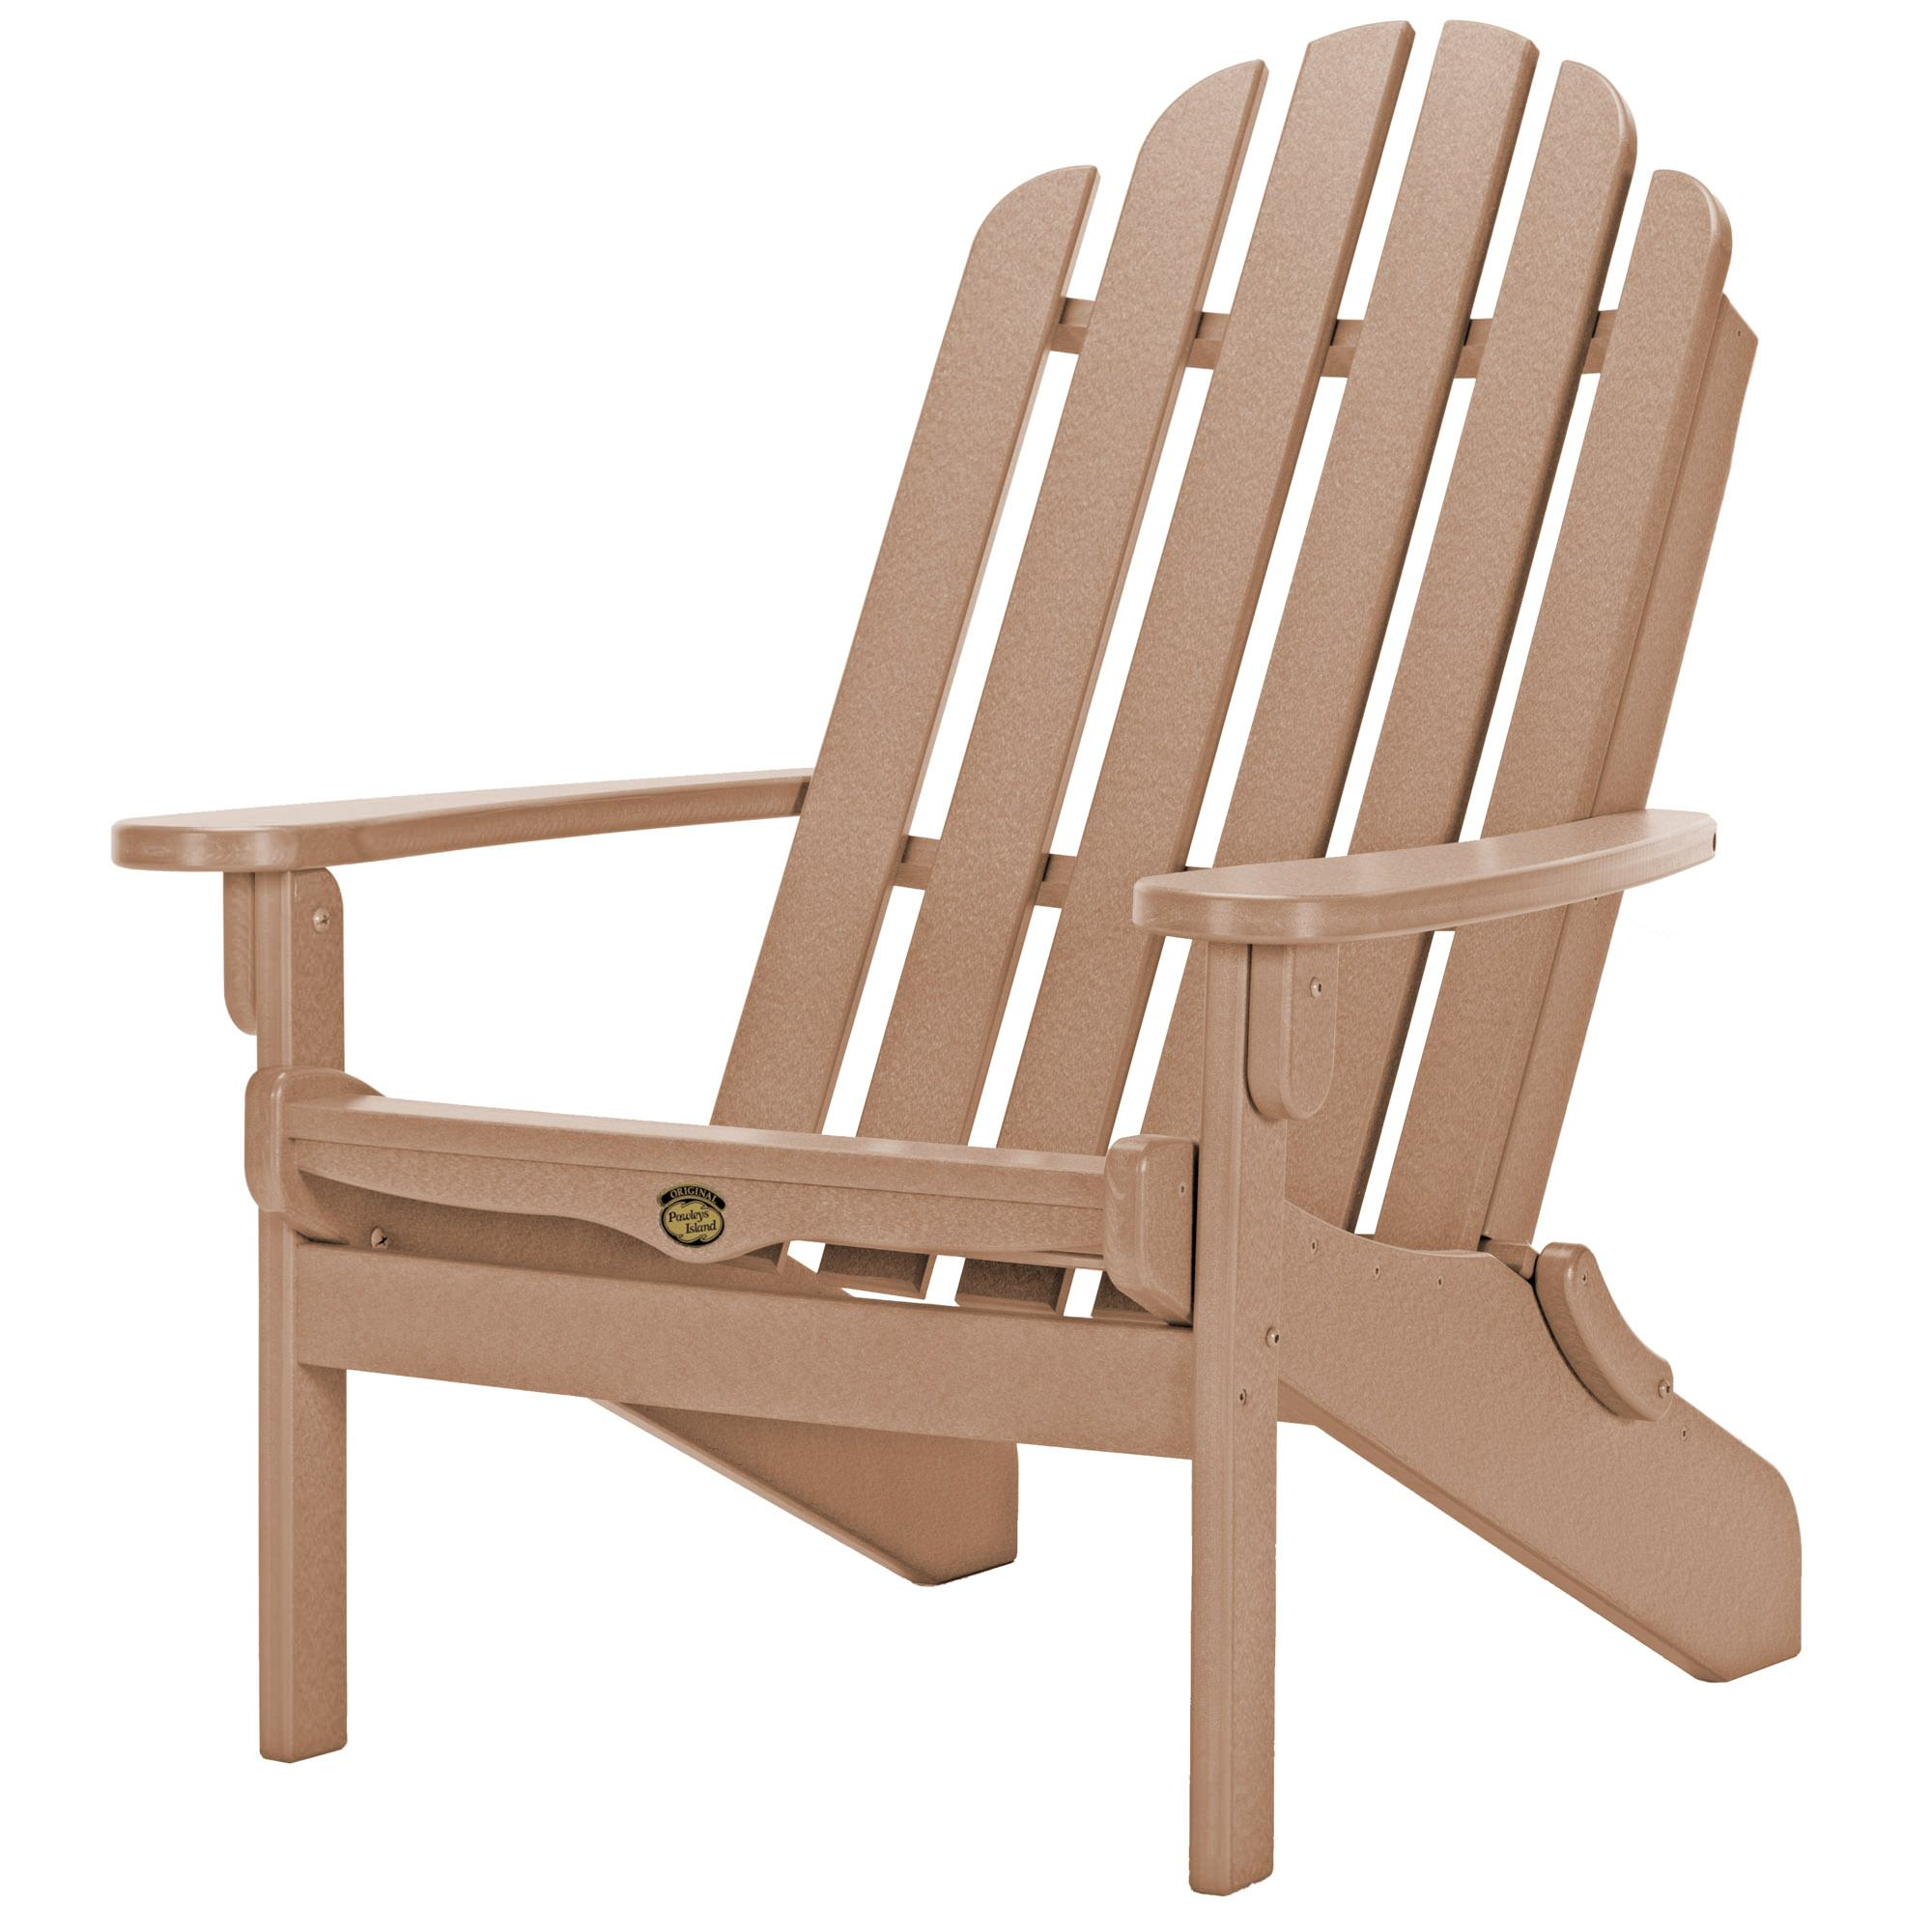 Essentials Folding Adirondack Chair|Pawleys Island |